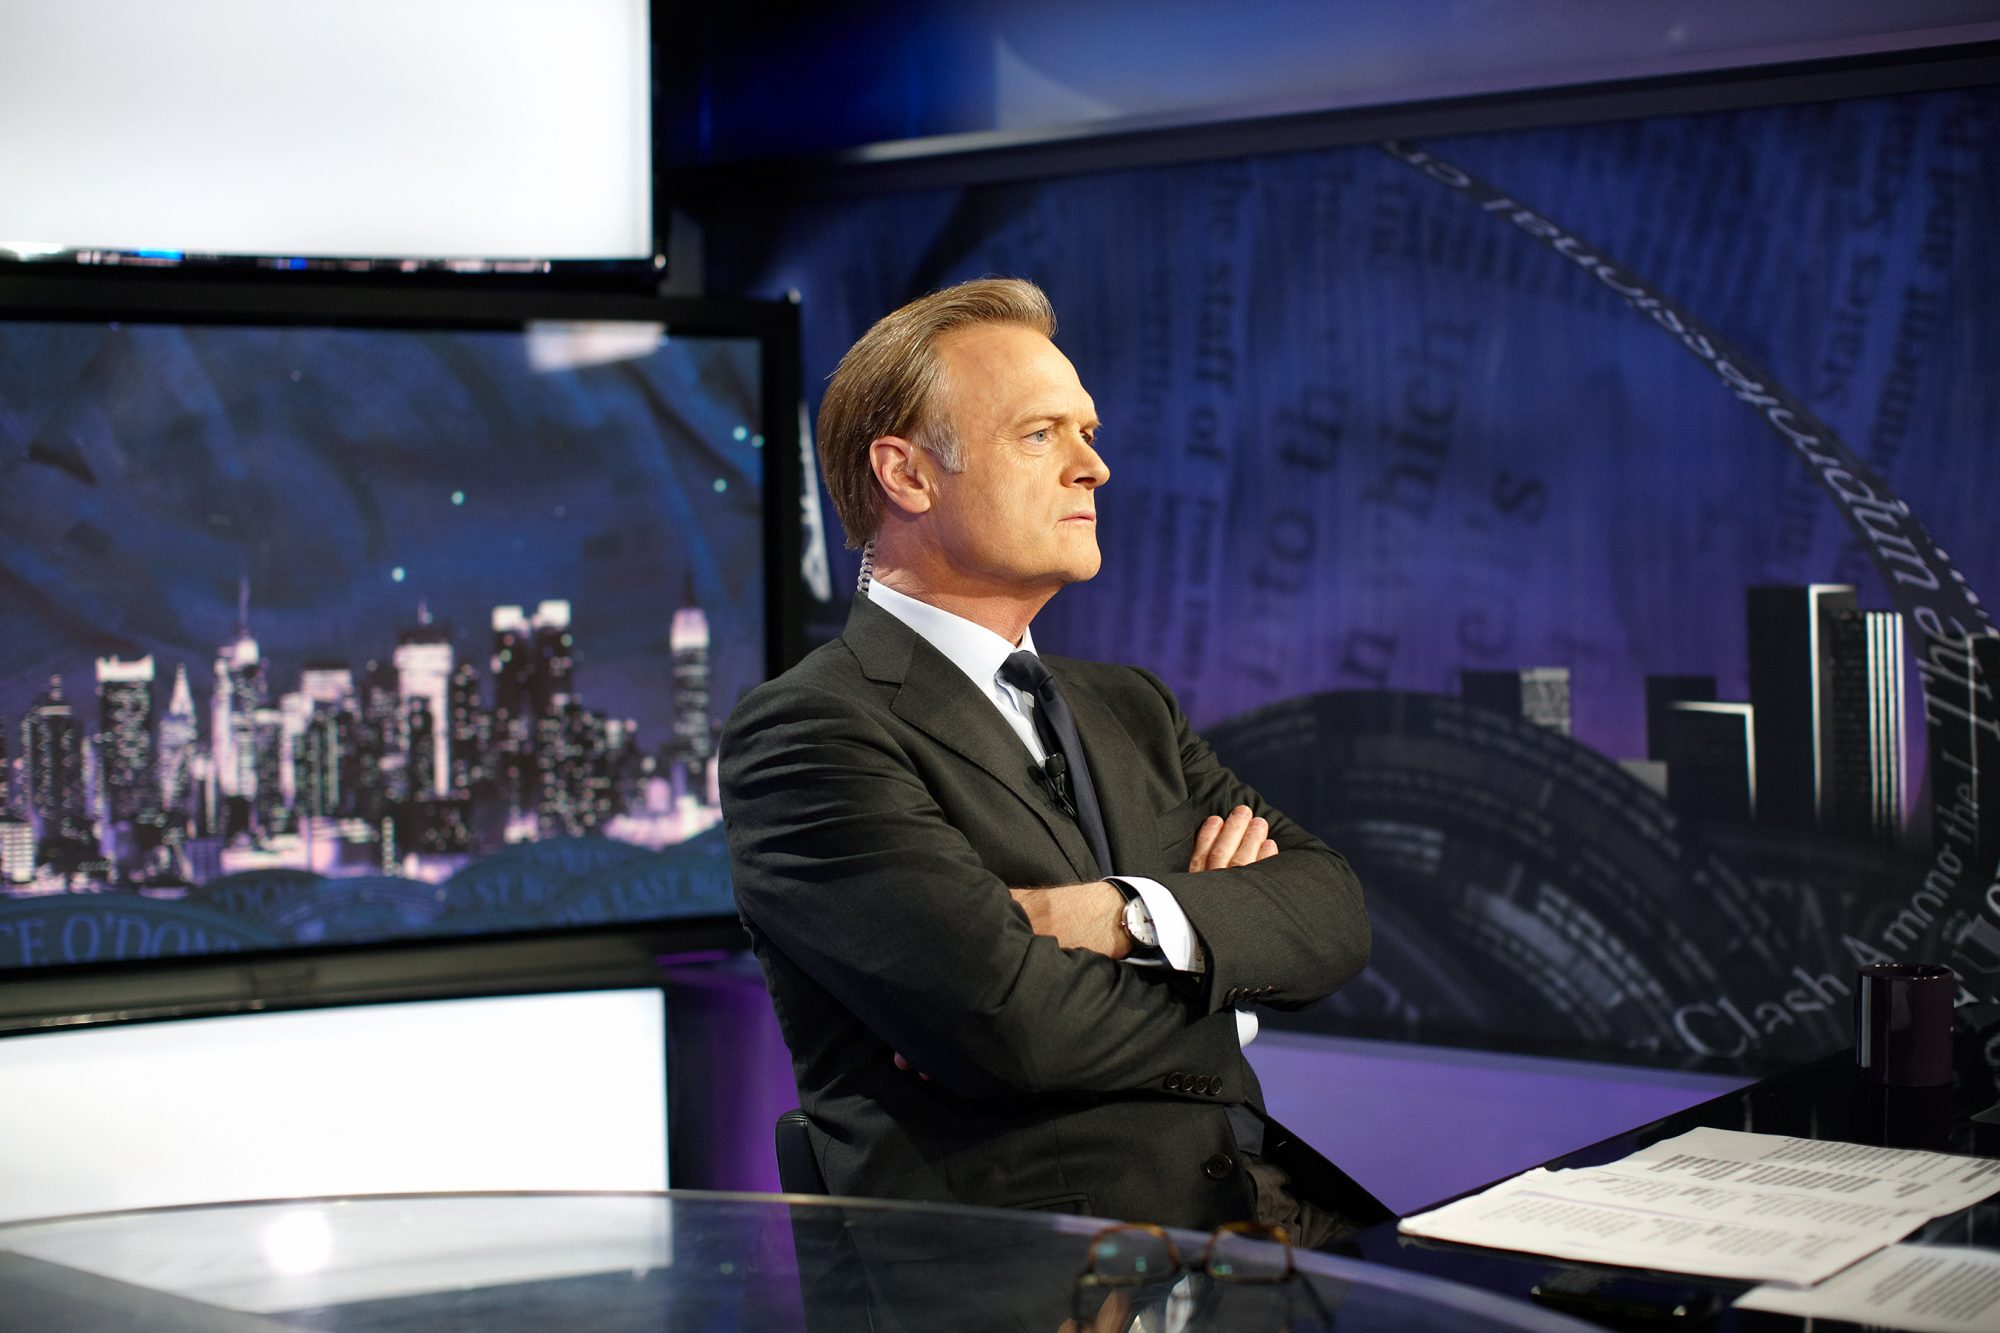 New York, NY - May 19th 2011: Lawrence O'Donnell, host of MSNBCs